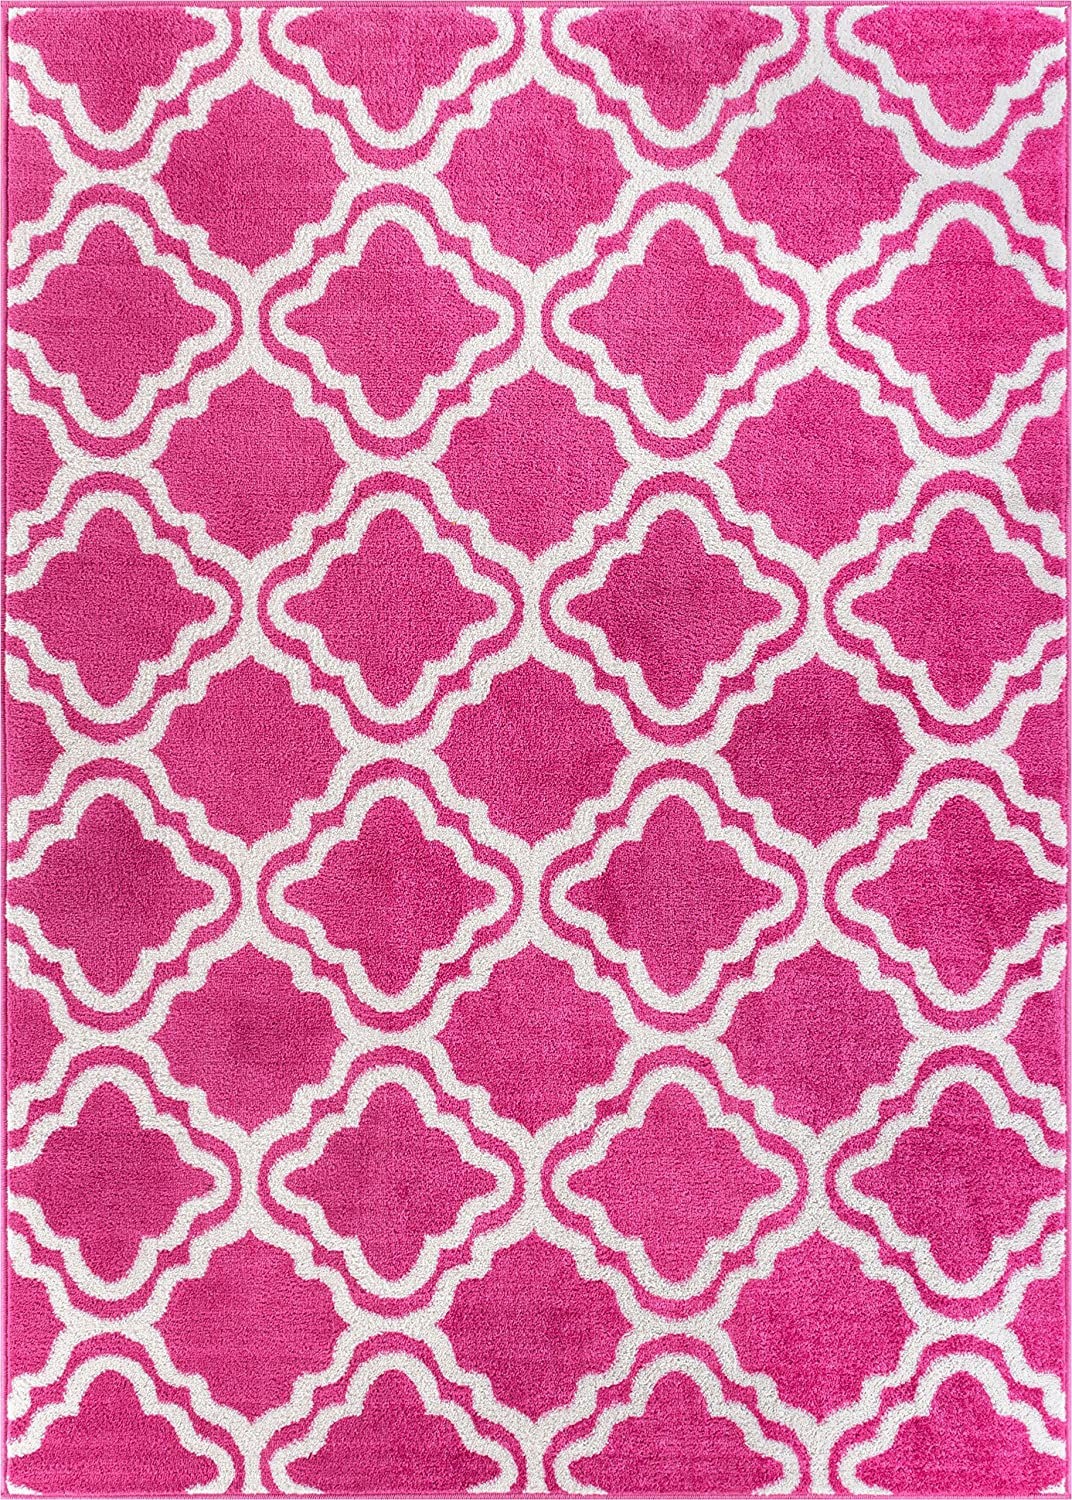 "Well Woven StarBright Calipso Modern Geometric Trellis Pink 3'3"" x 5' Kids Area Rug"